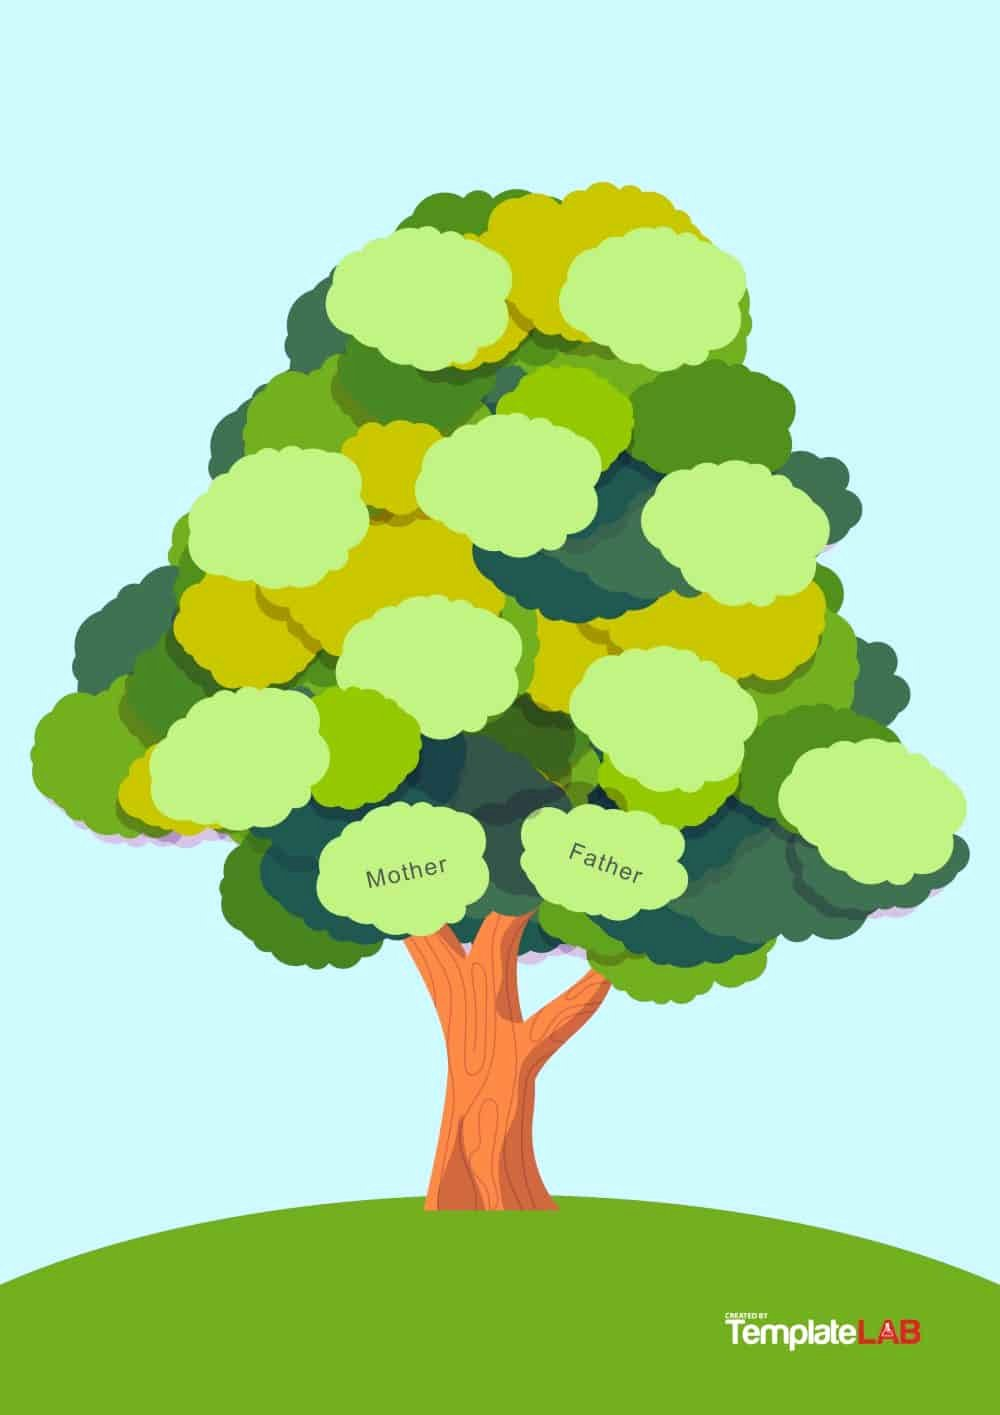 Family Tree with Pictures Template New 50 Free Family Tree Templates Word Excel Pdf